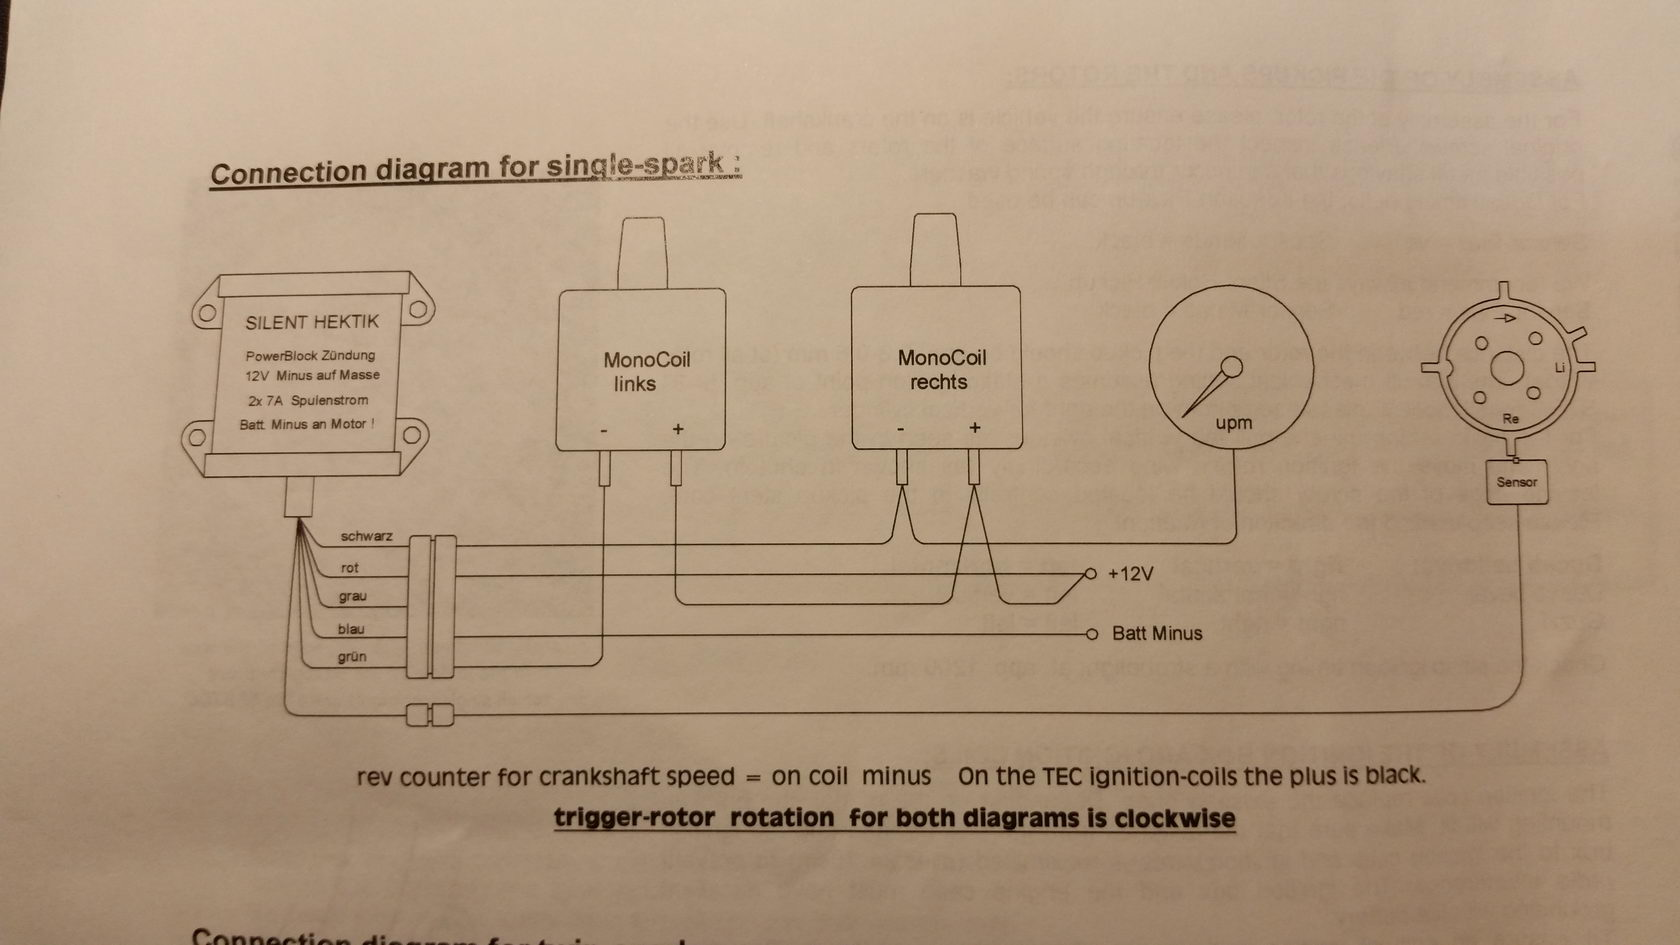 hight resolution of 400 amp meter base with 200 amp breaker for 200 amp panel in house wiring diagram